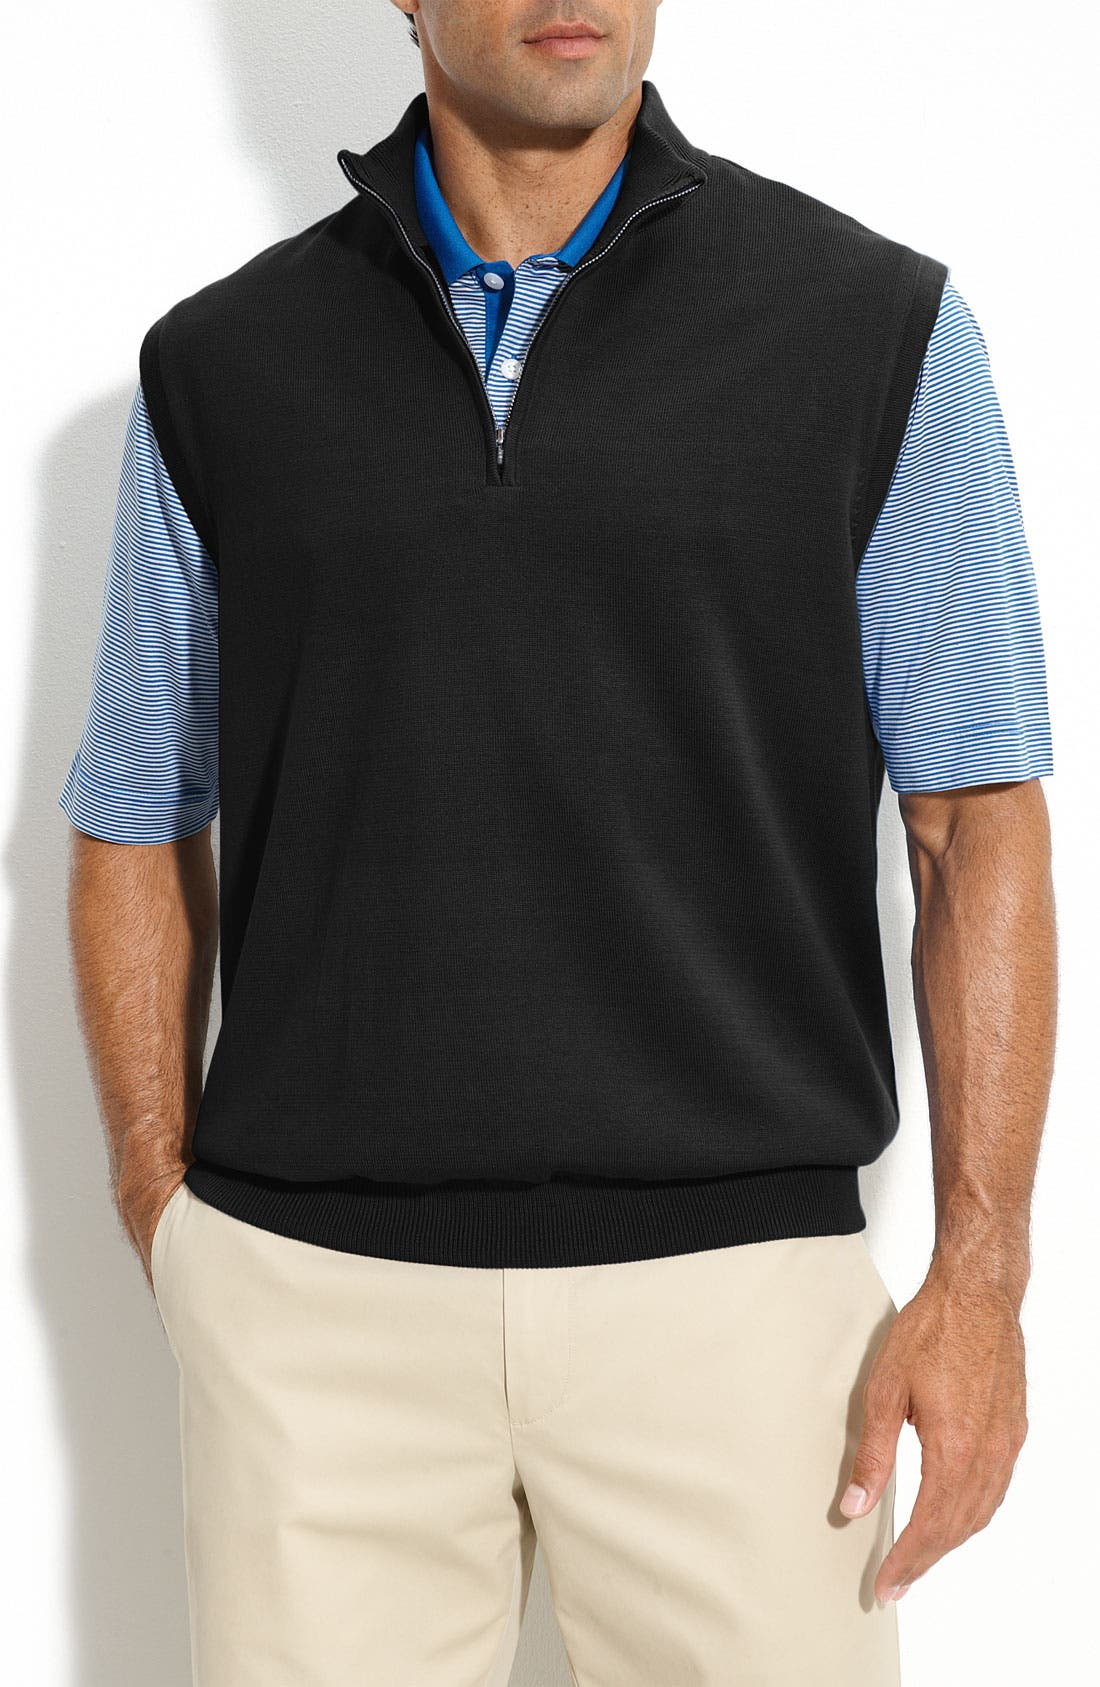 Main Image - Cutter & Buck 'Sandpoint' Half Zip Golf Vest